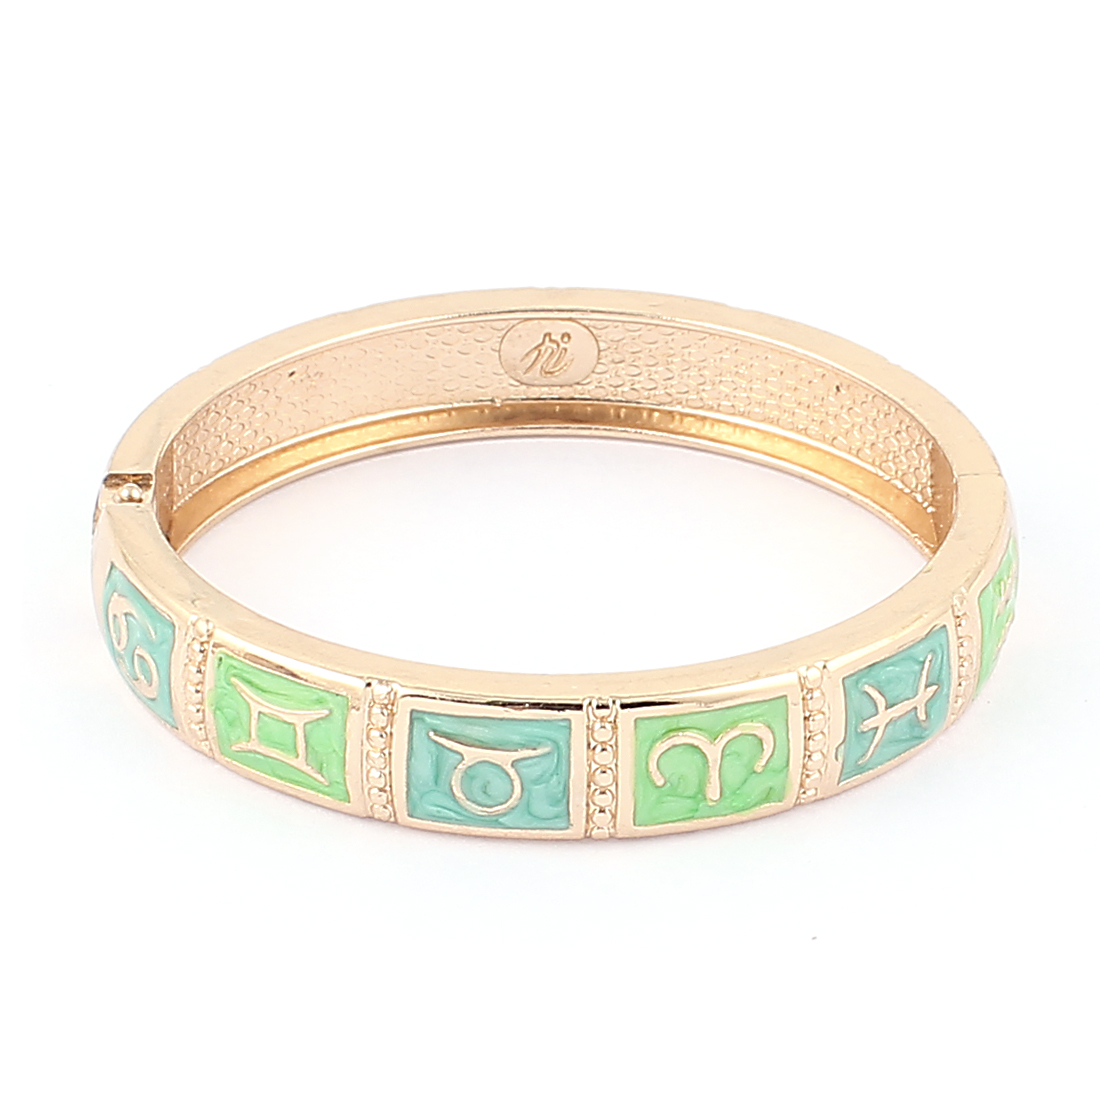 Round Wrist Gold Tone Metal Green 12 Constellations Pattern Bracelet